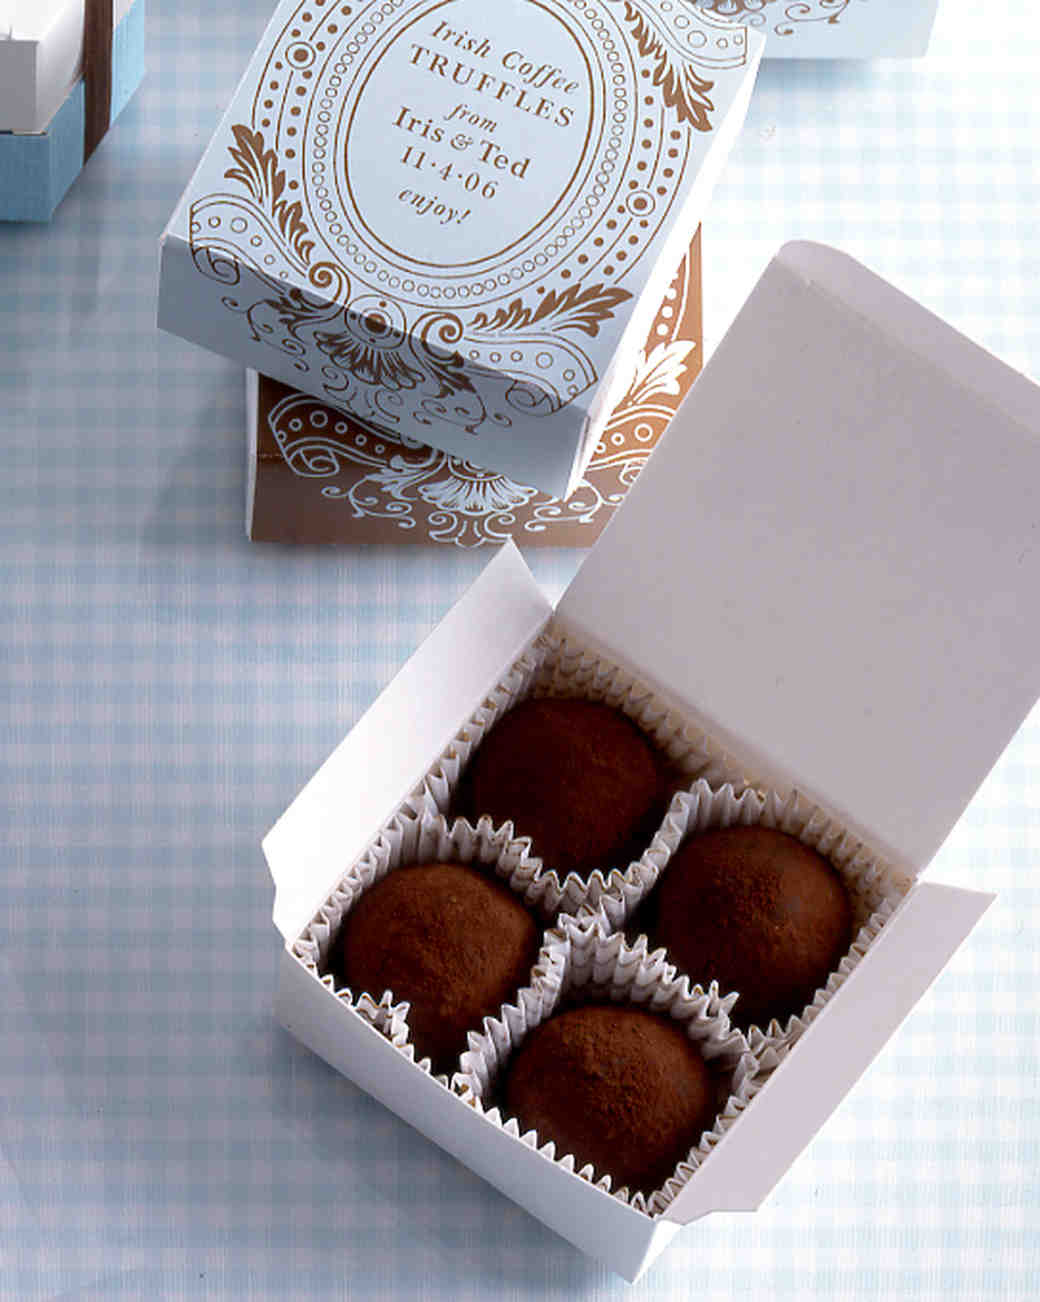 boozy-desserts-irish-coffee-truffles-wa102287-0814.jpg